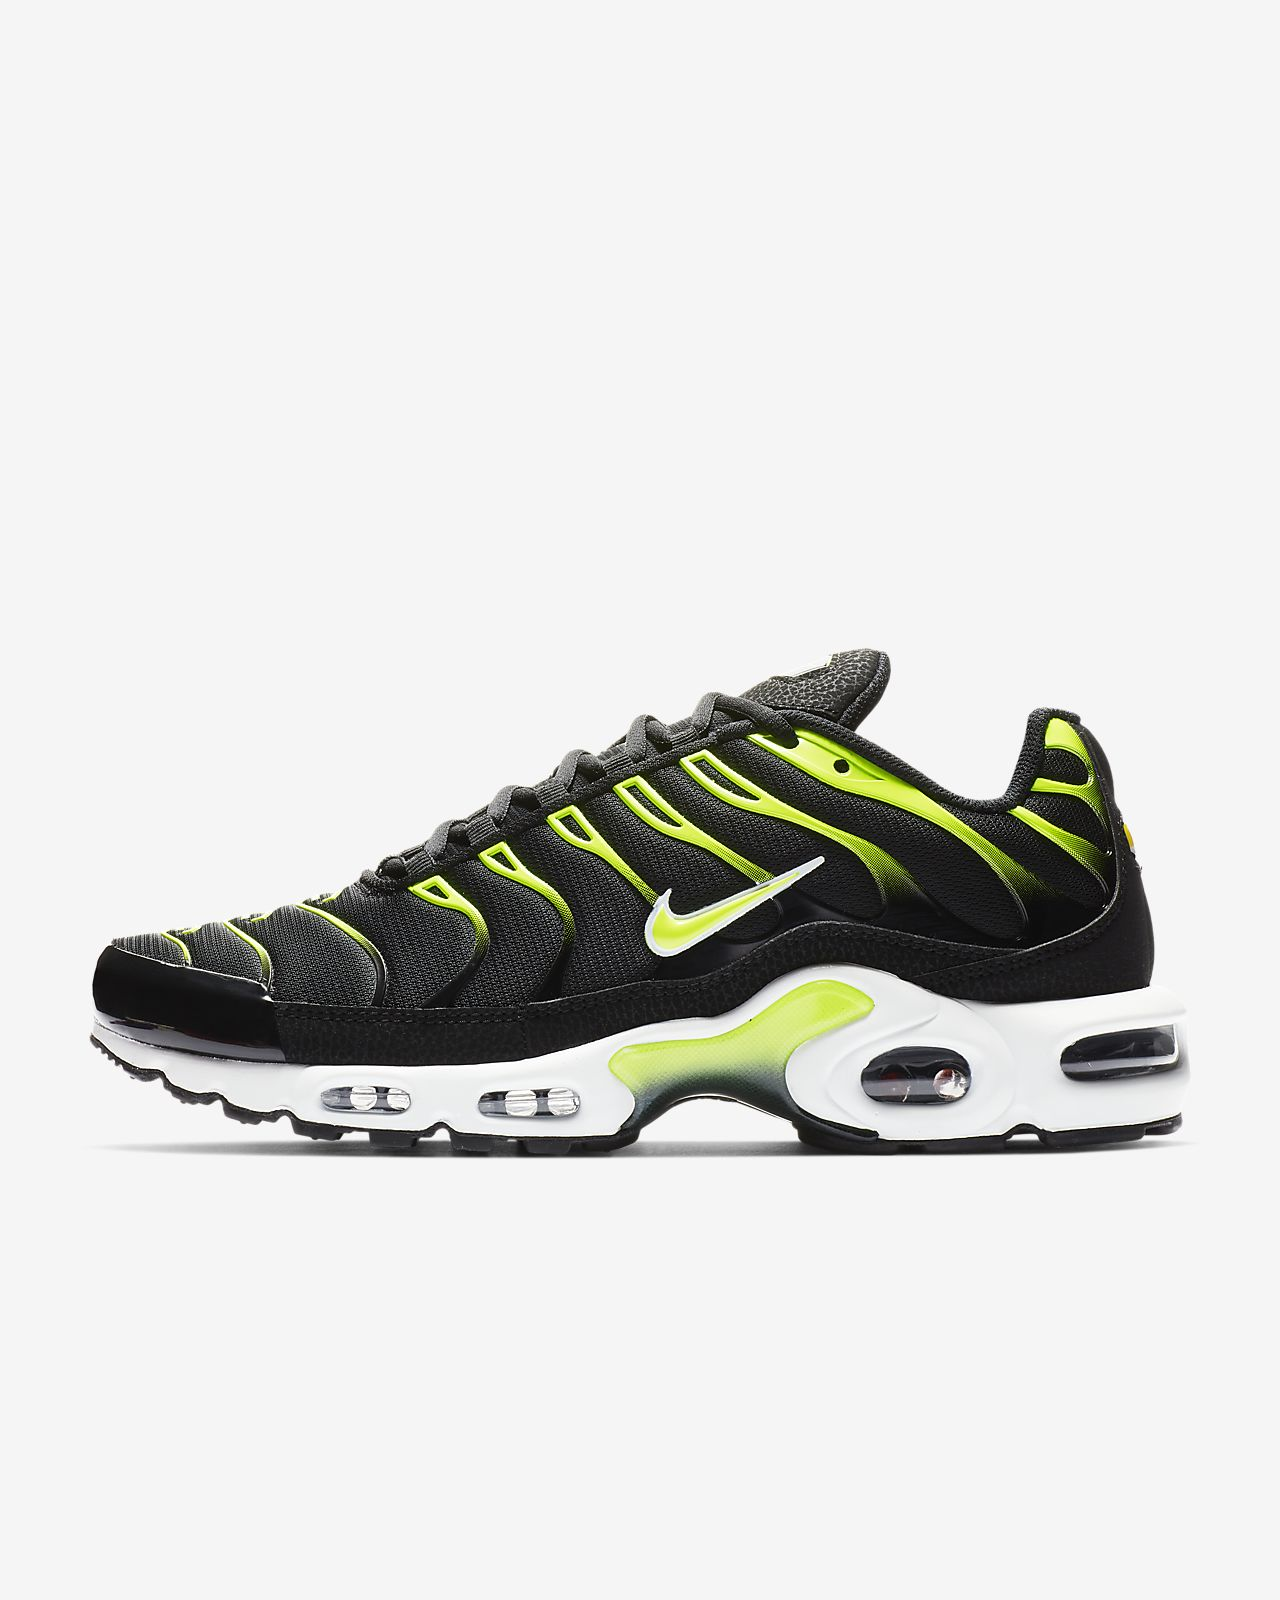 innovative design 3cceb 61967 Low Resolution Nike Air Max Plus Men s Shoe Nike Air Max Plus Men s Shoe